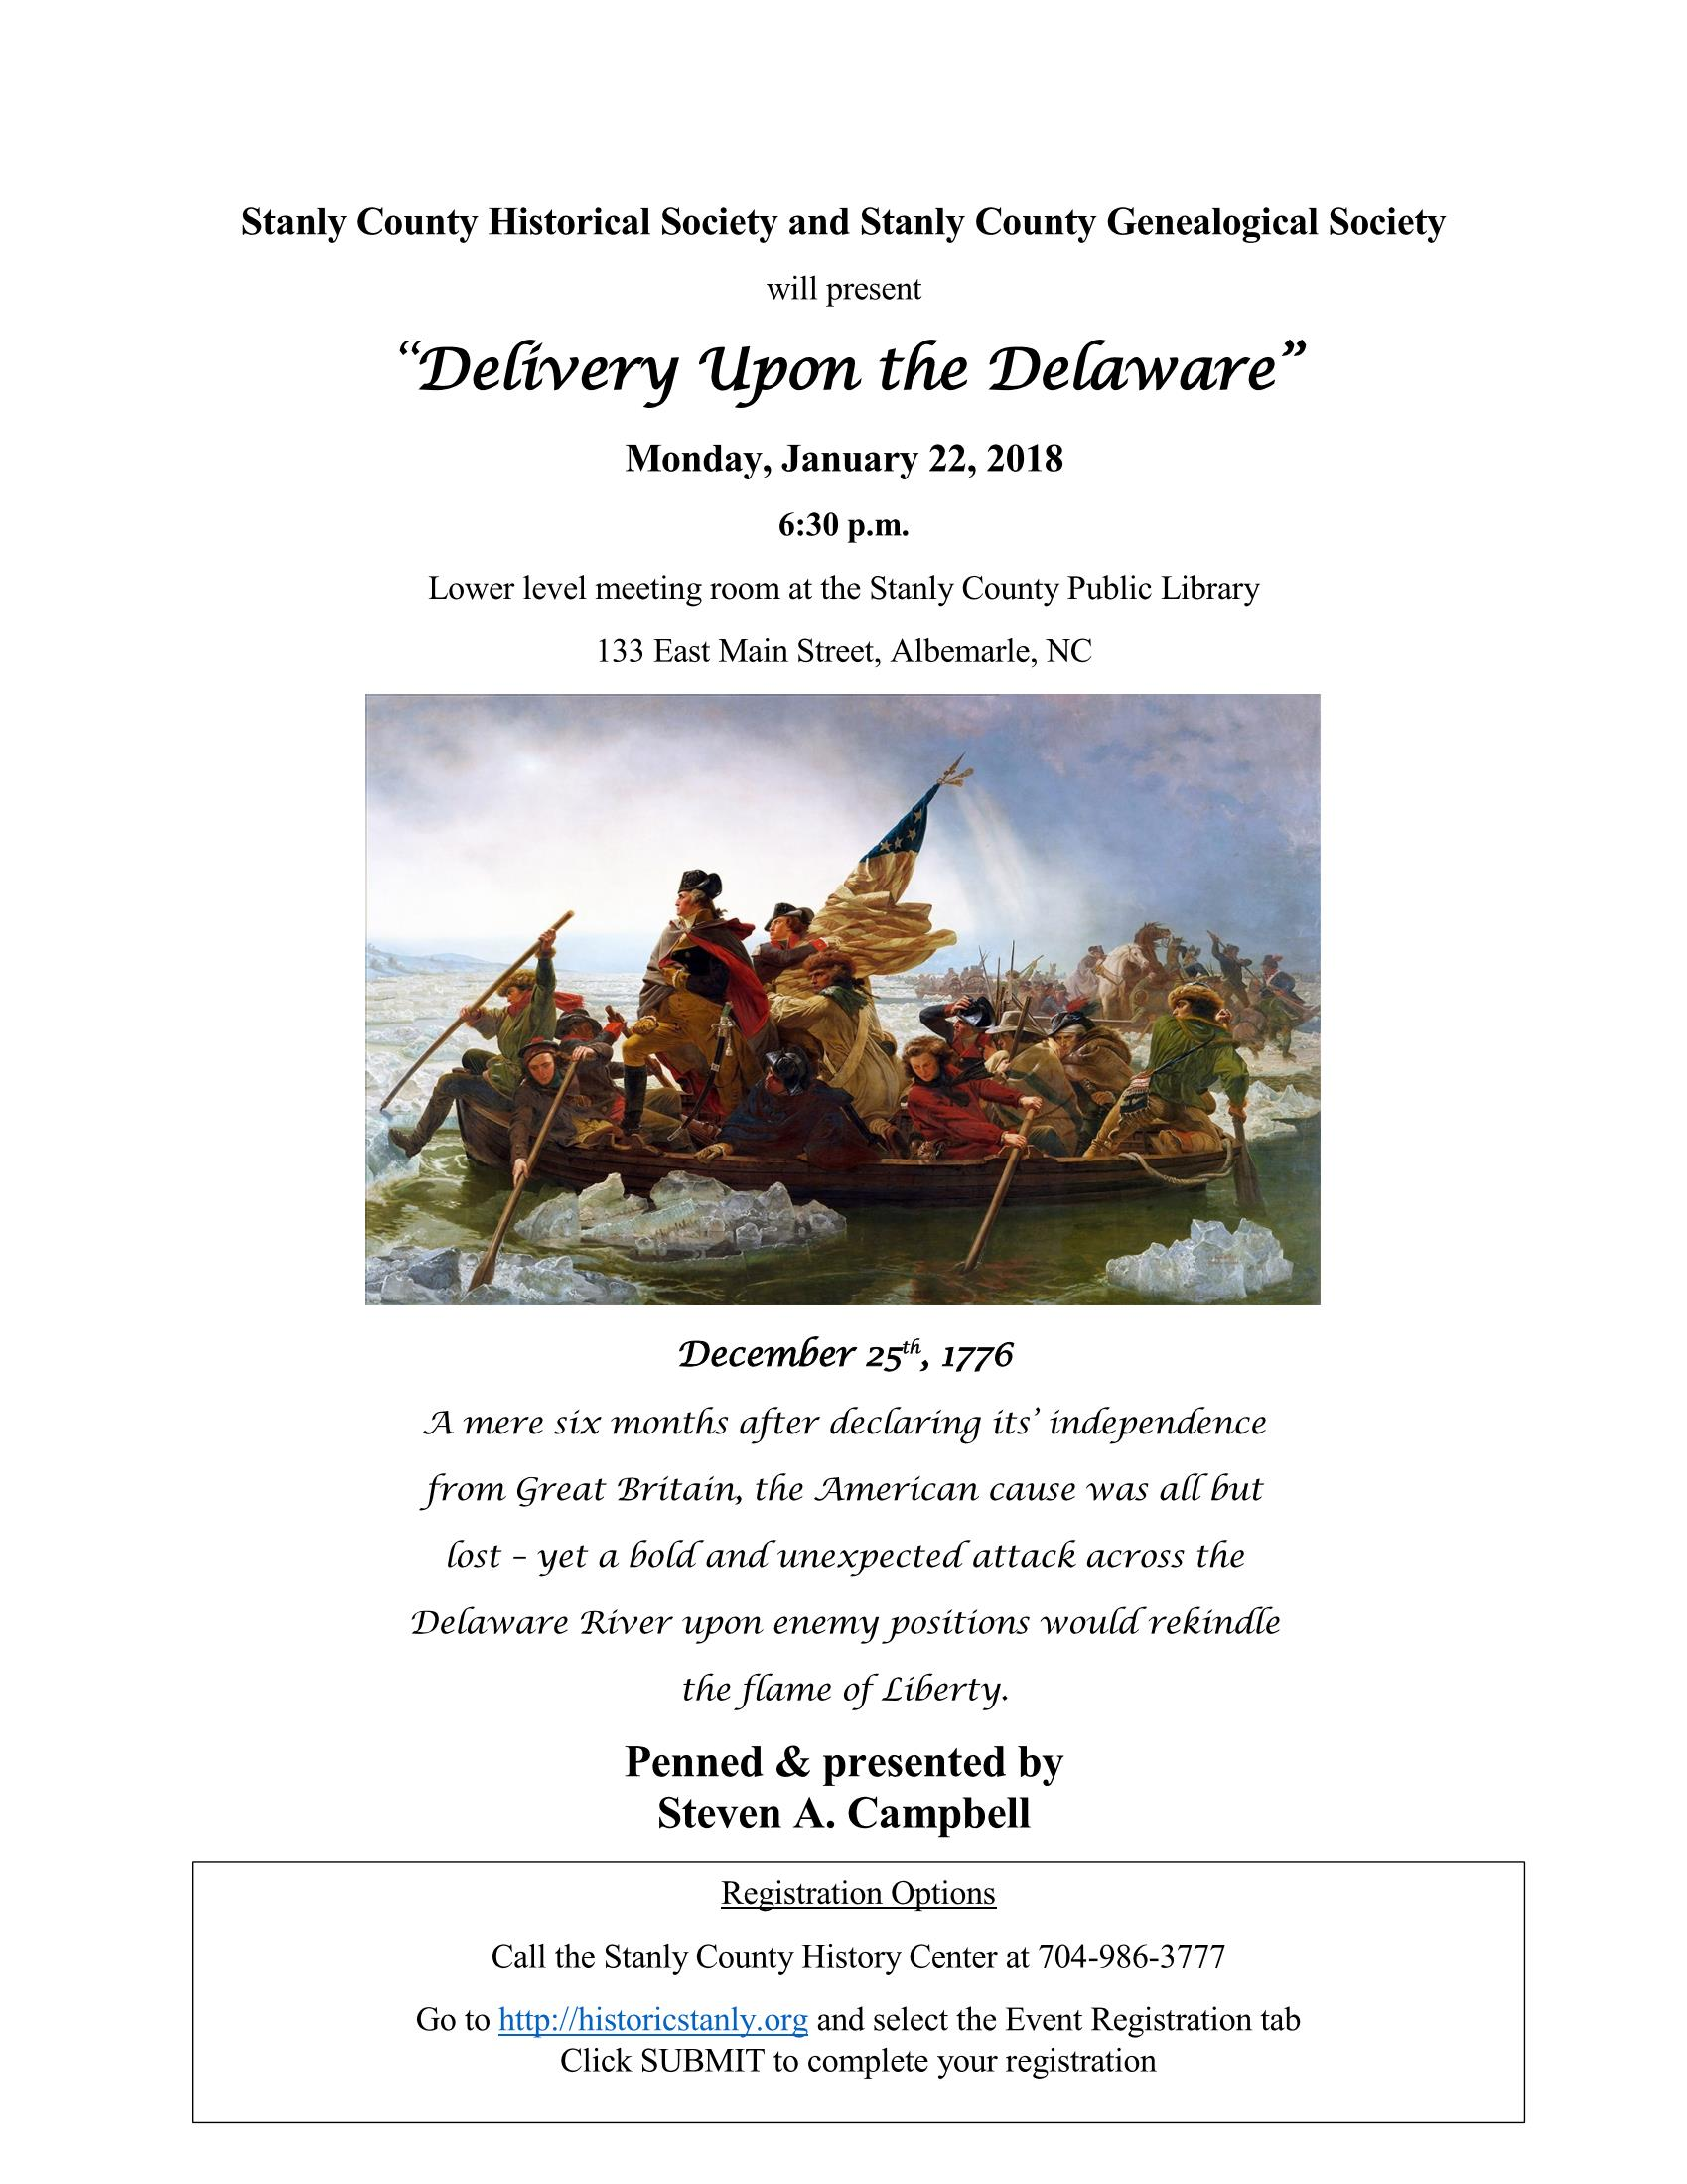 Delivery Upon The Delaware – Historical Society Program